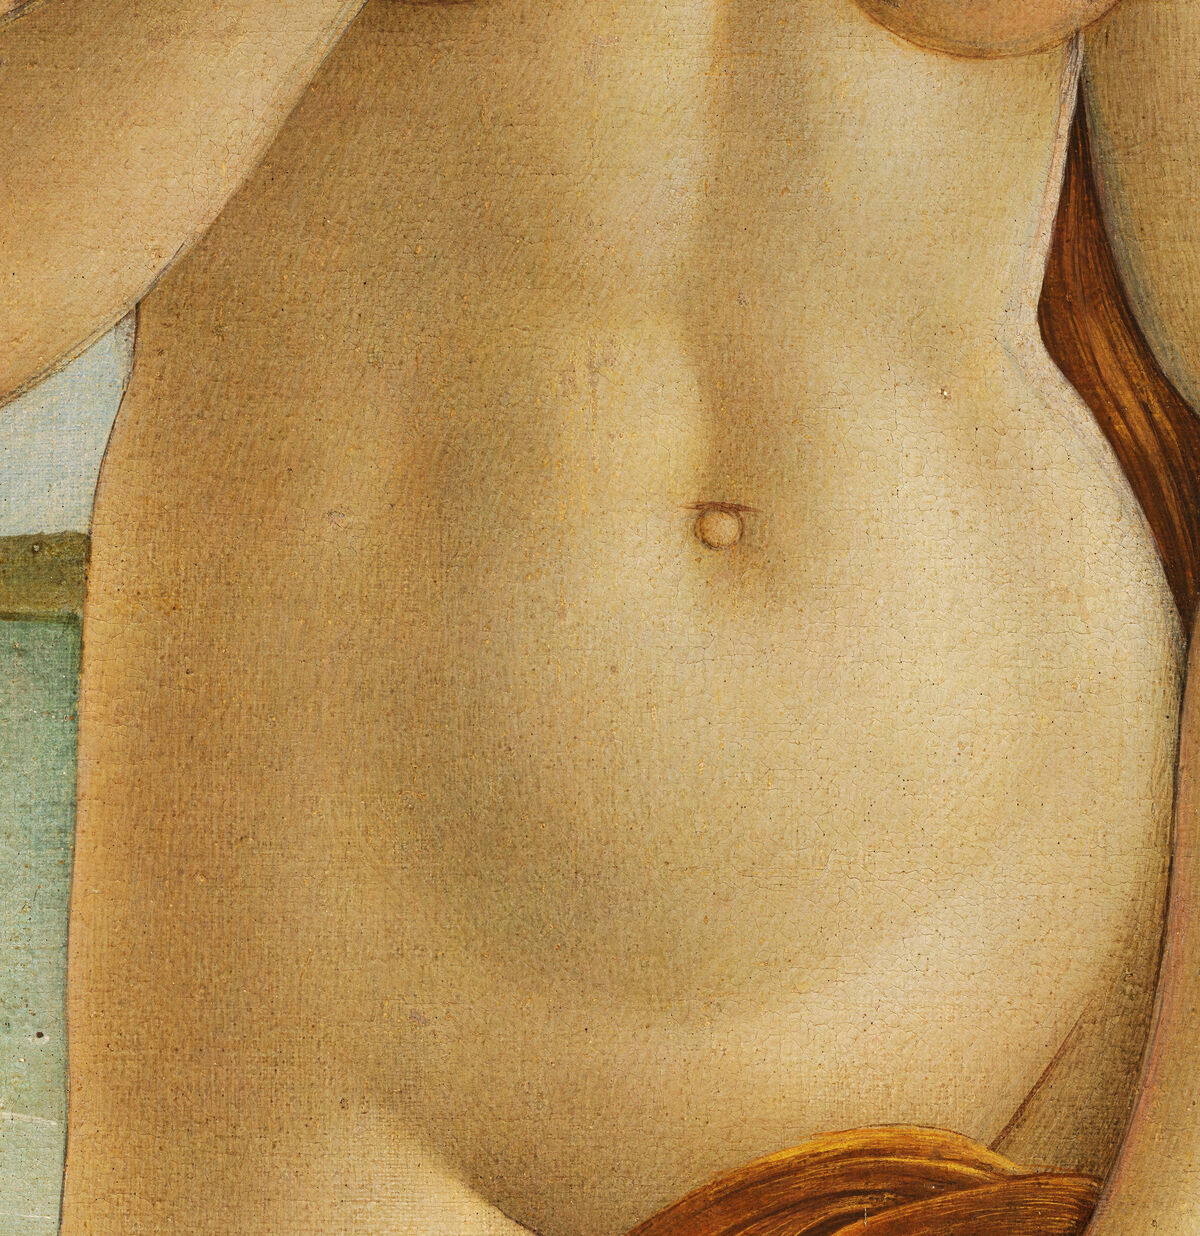 Sandro Botticelli, The Birth of Venus (detail), ca. 1486. Image via Wikimedia Commons.